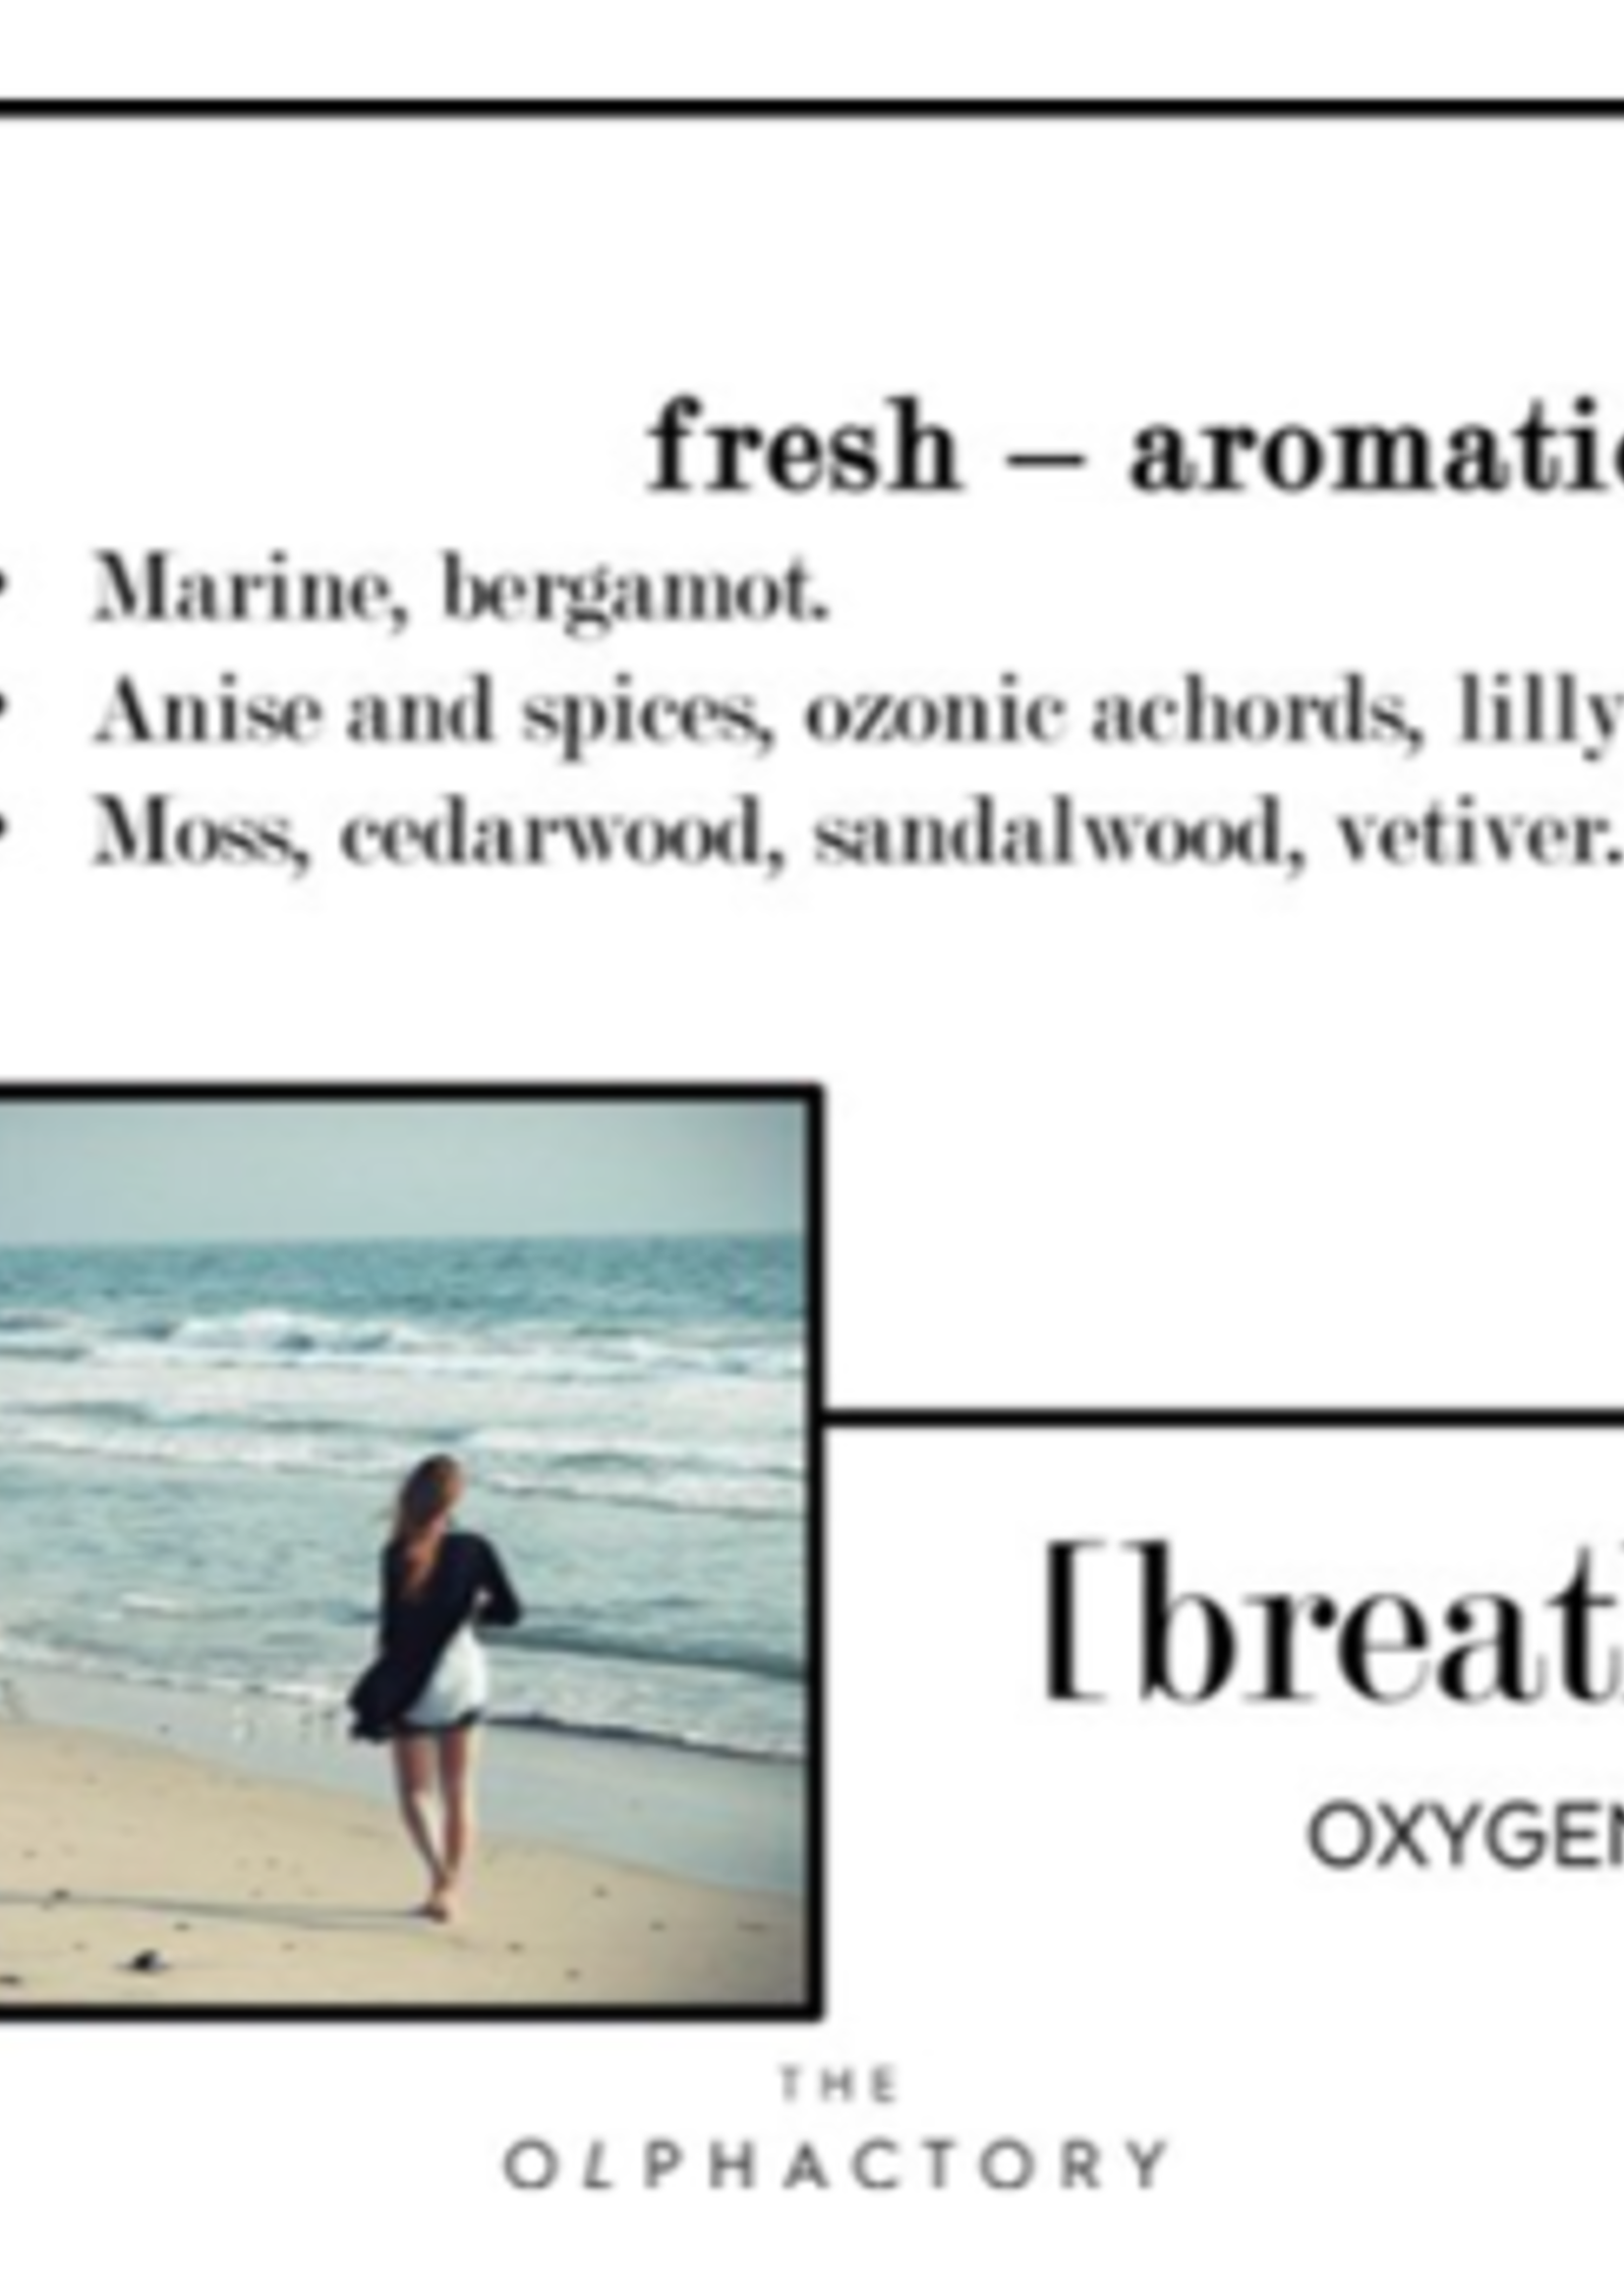 The Olphactory The Olphactory luxe geurspray Breathe Oxygen